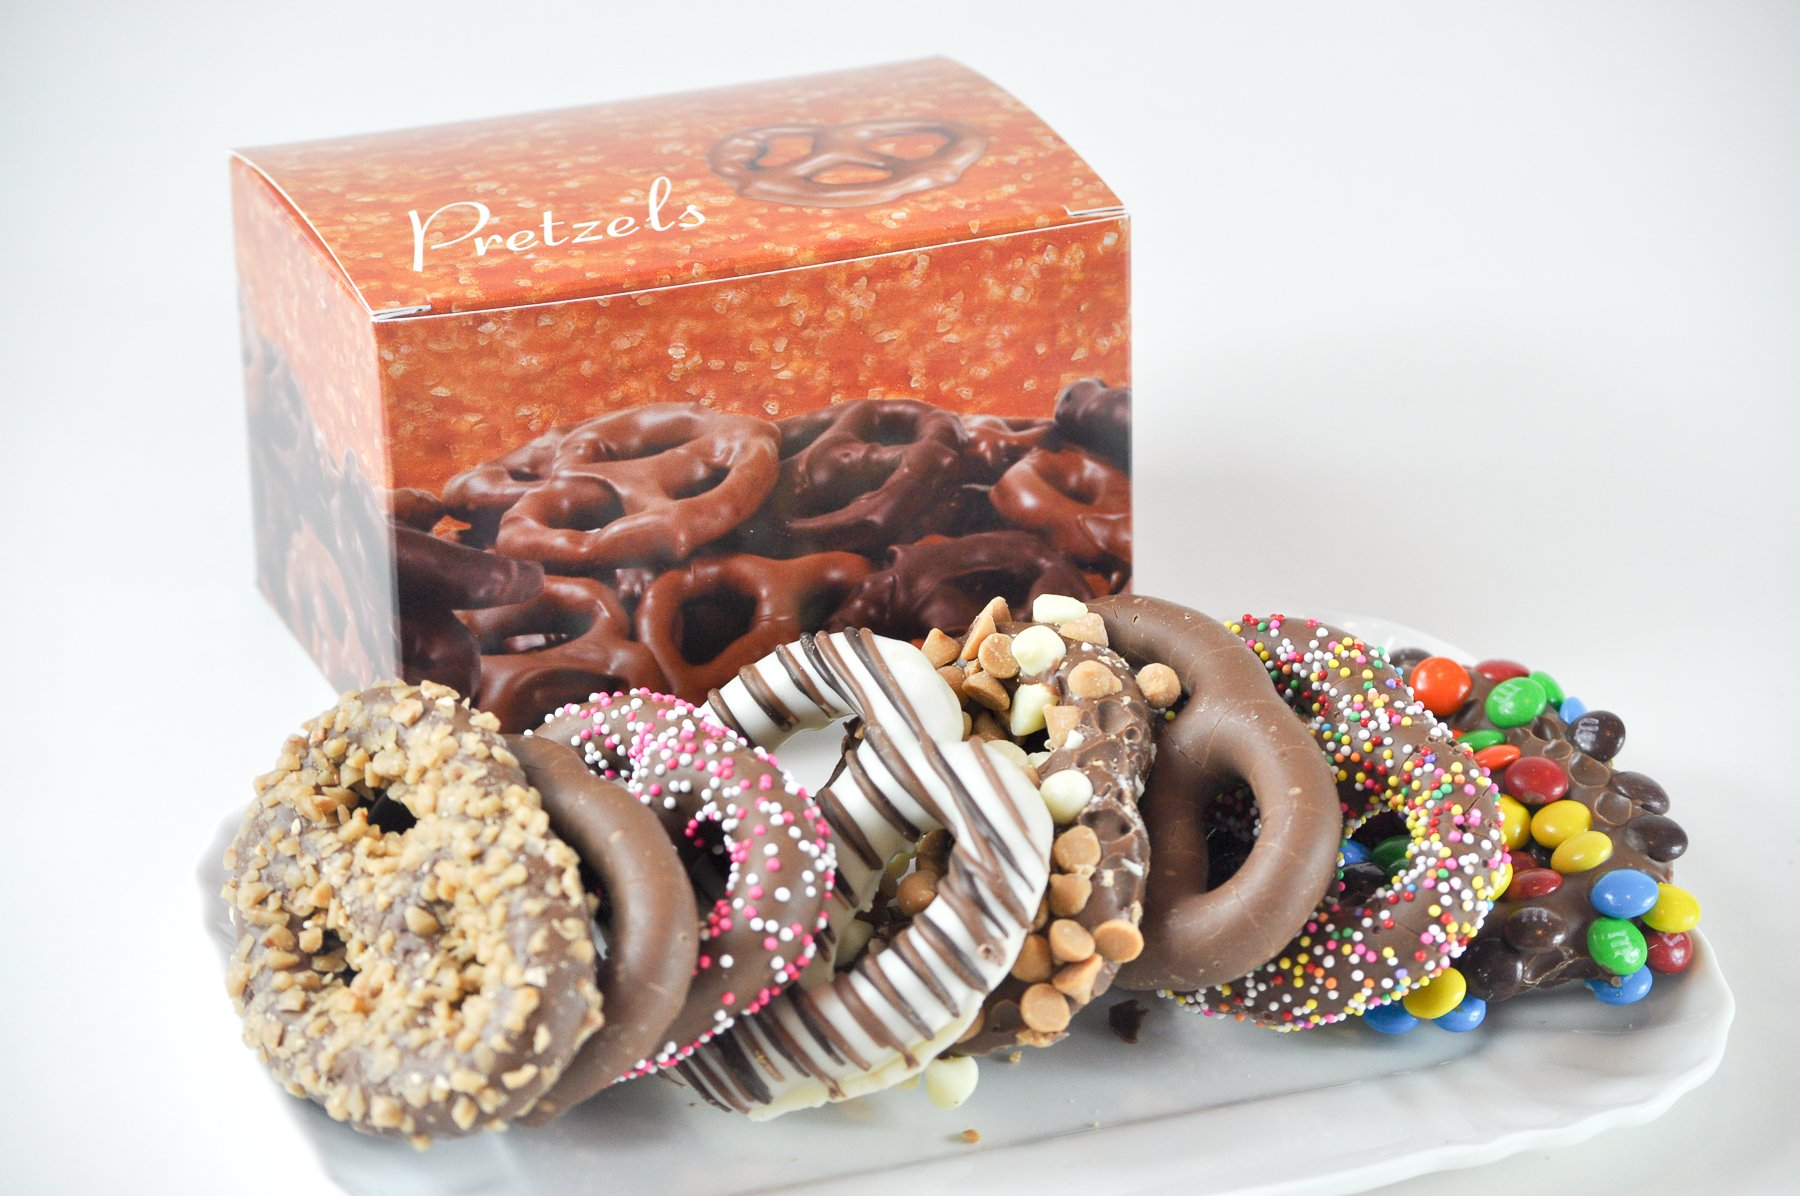 CHOCOLATE PRETZELS WITH TOPPINGS (ASSORTED) - 8 PC BOX